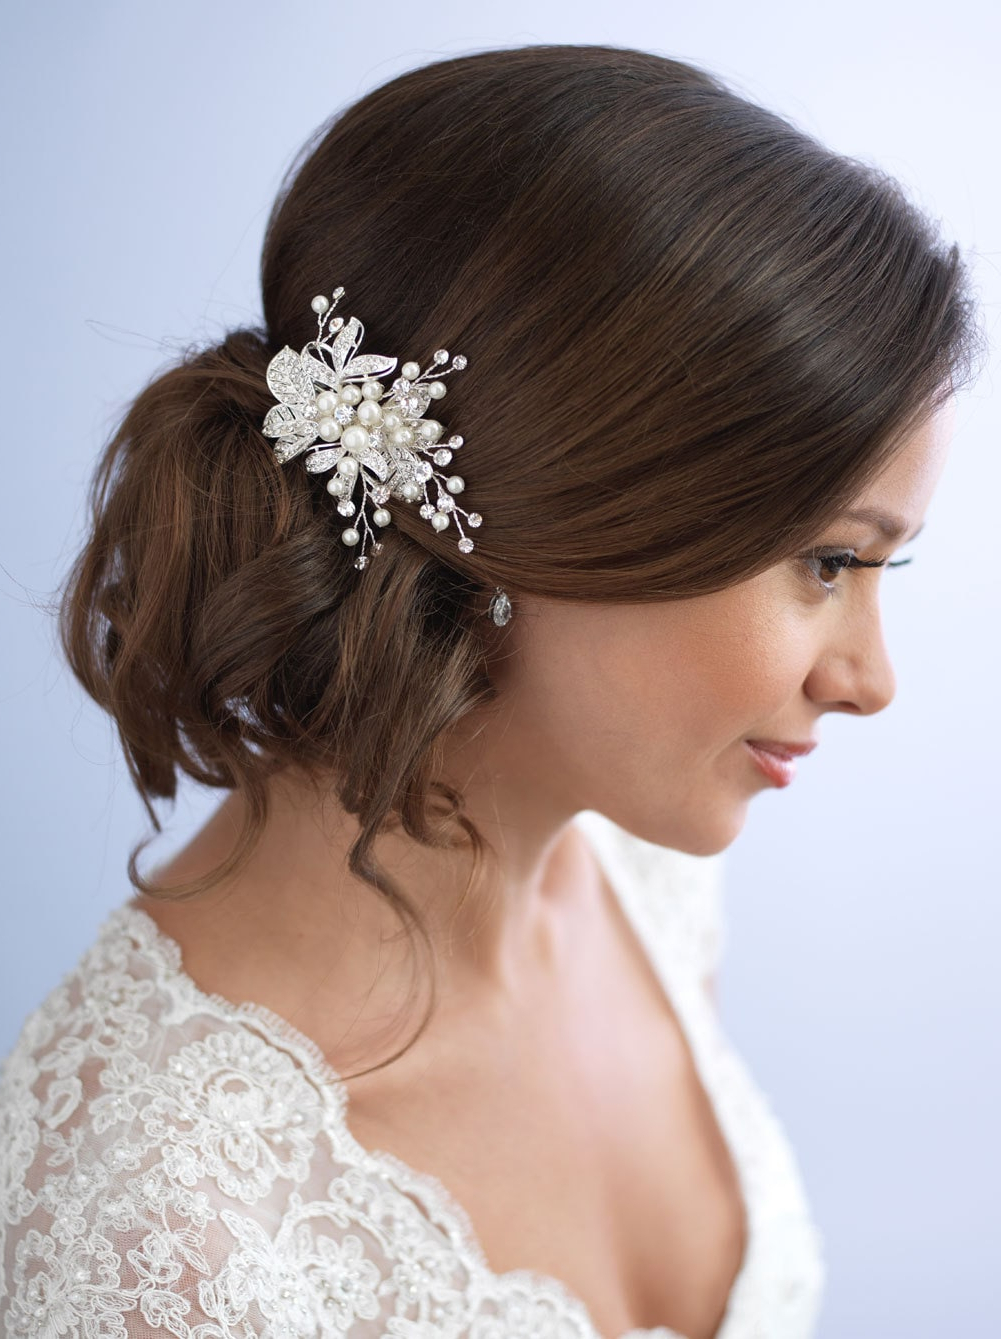 Pearl Hair Clip Rhinestone Bridal Hair Clip Floral Wedding Regarding Widely Used Clip Hairstyles (View 17 of 20)